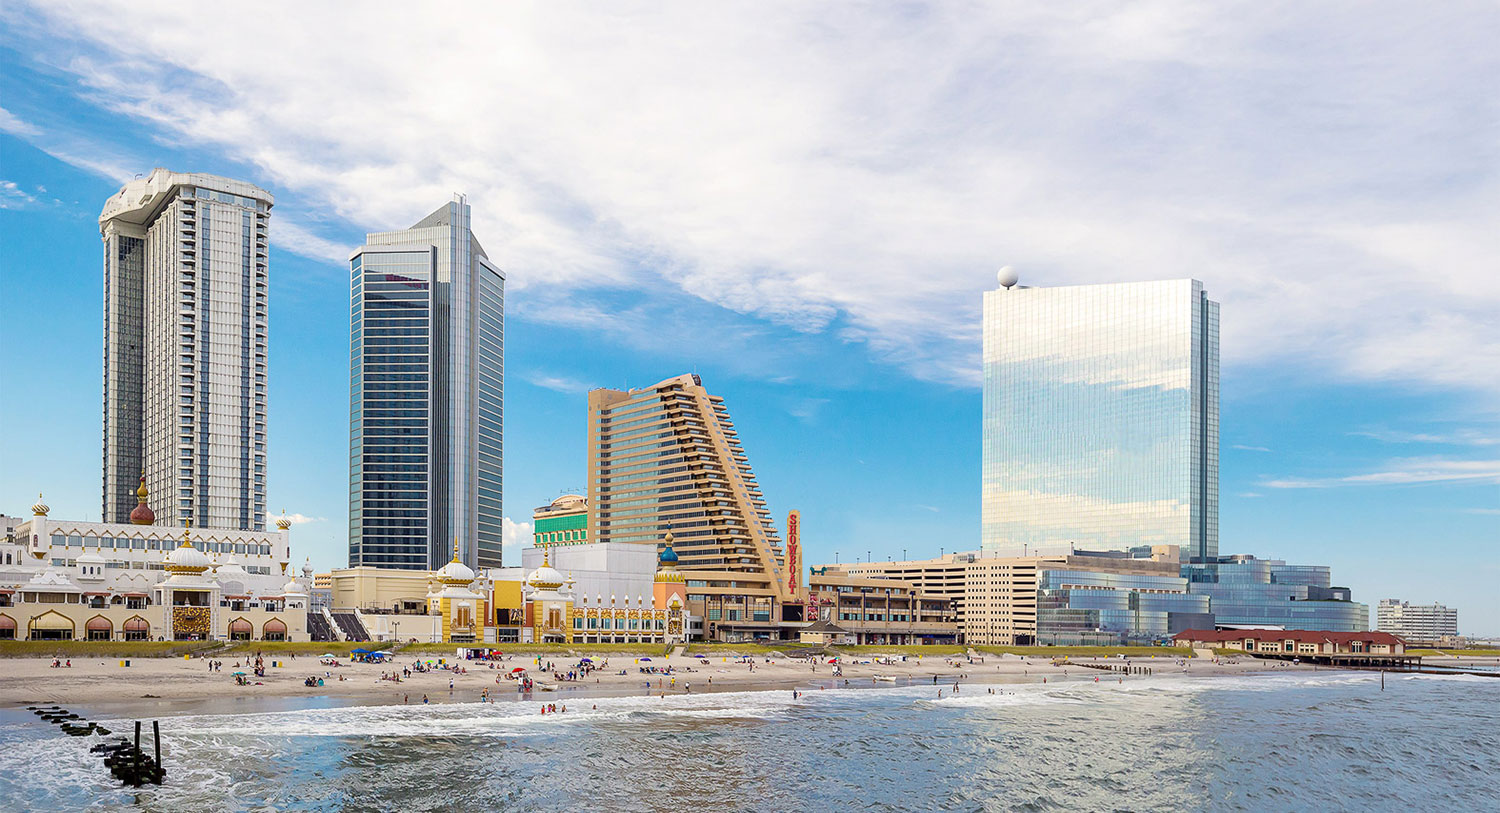 Hero image of Atlantic City boardwalk and showboat from ocean view